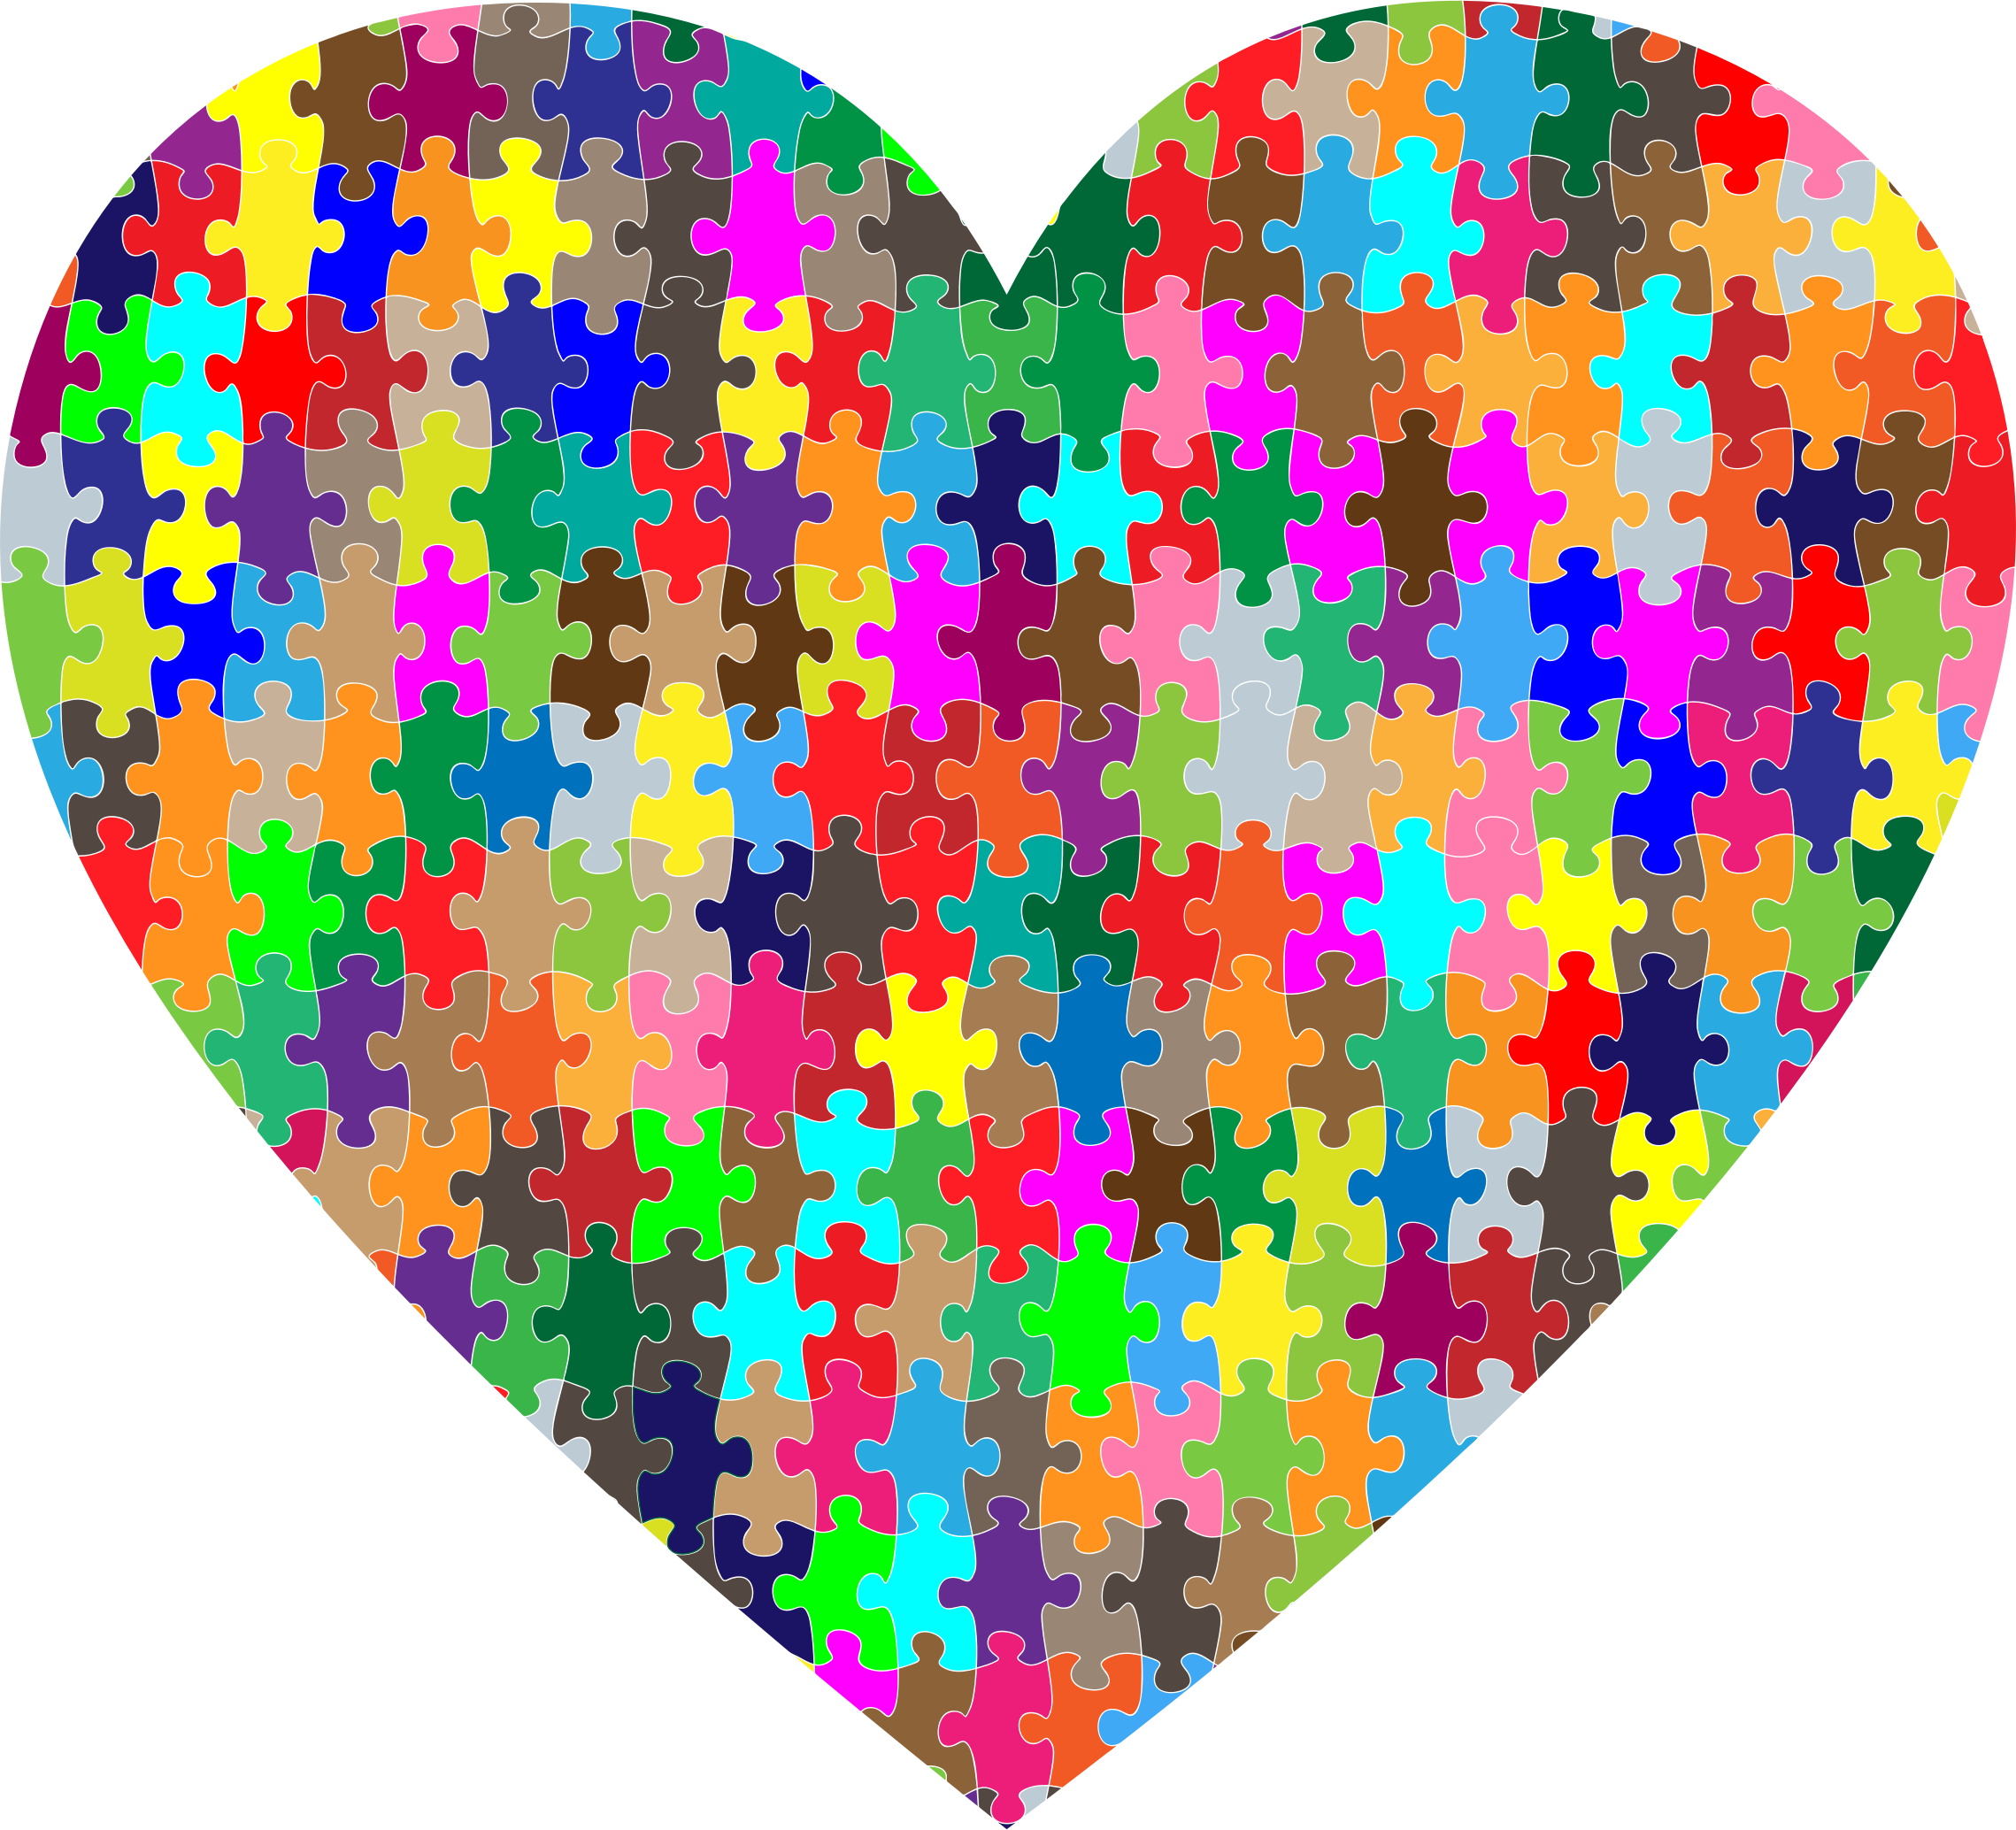 Colorful Puzzle Heart by GDJ